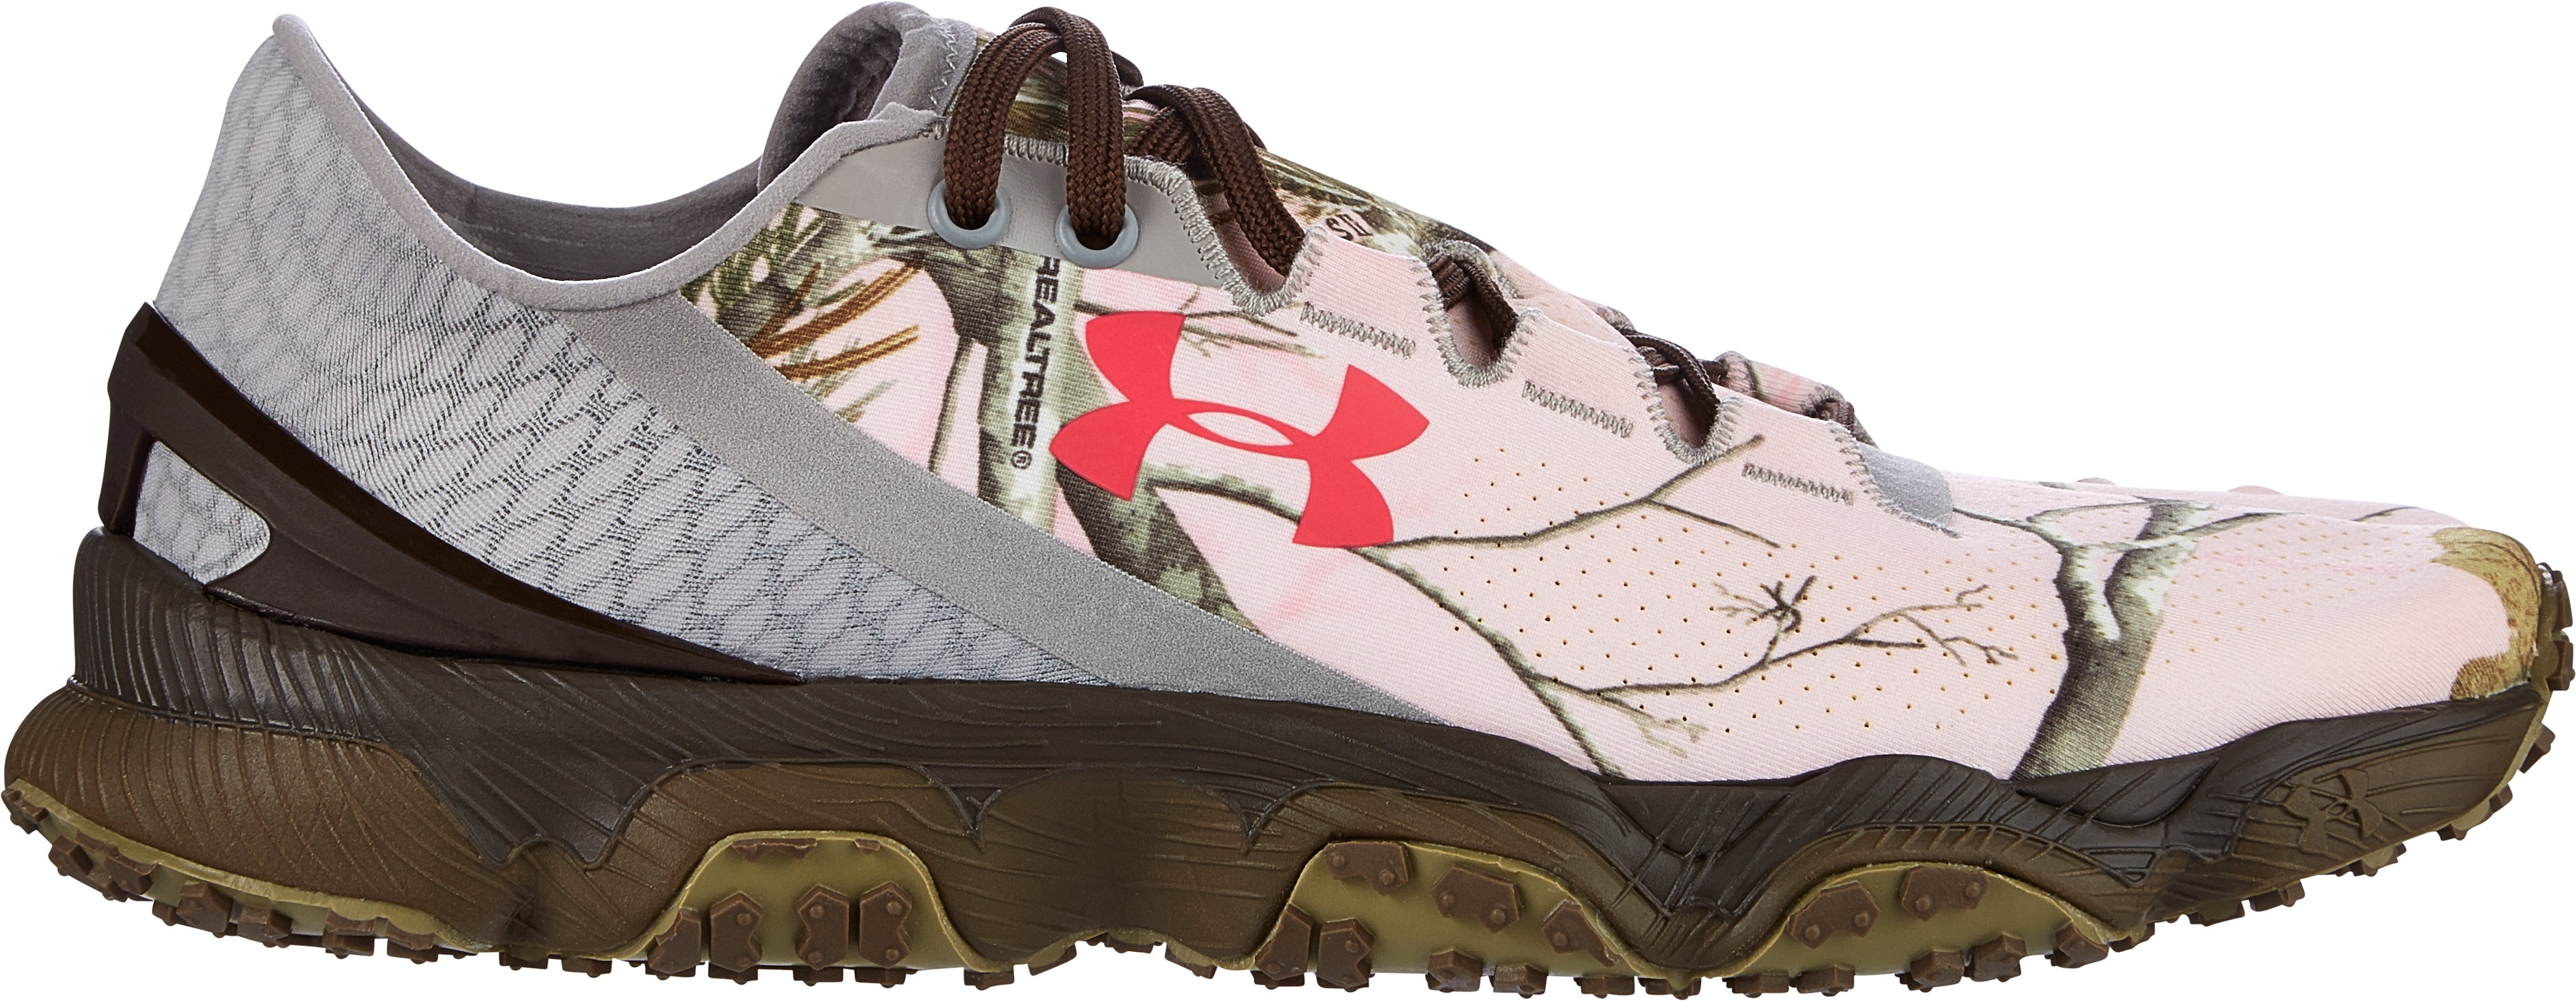 Women's UA SpeedForm® XC Camo Trail Running Shoes, Realtree Ap Pink